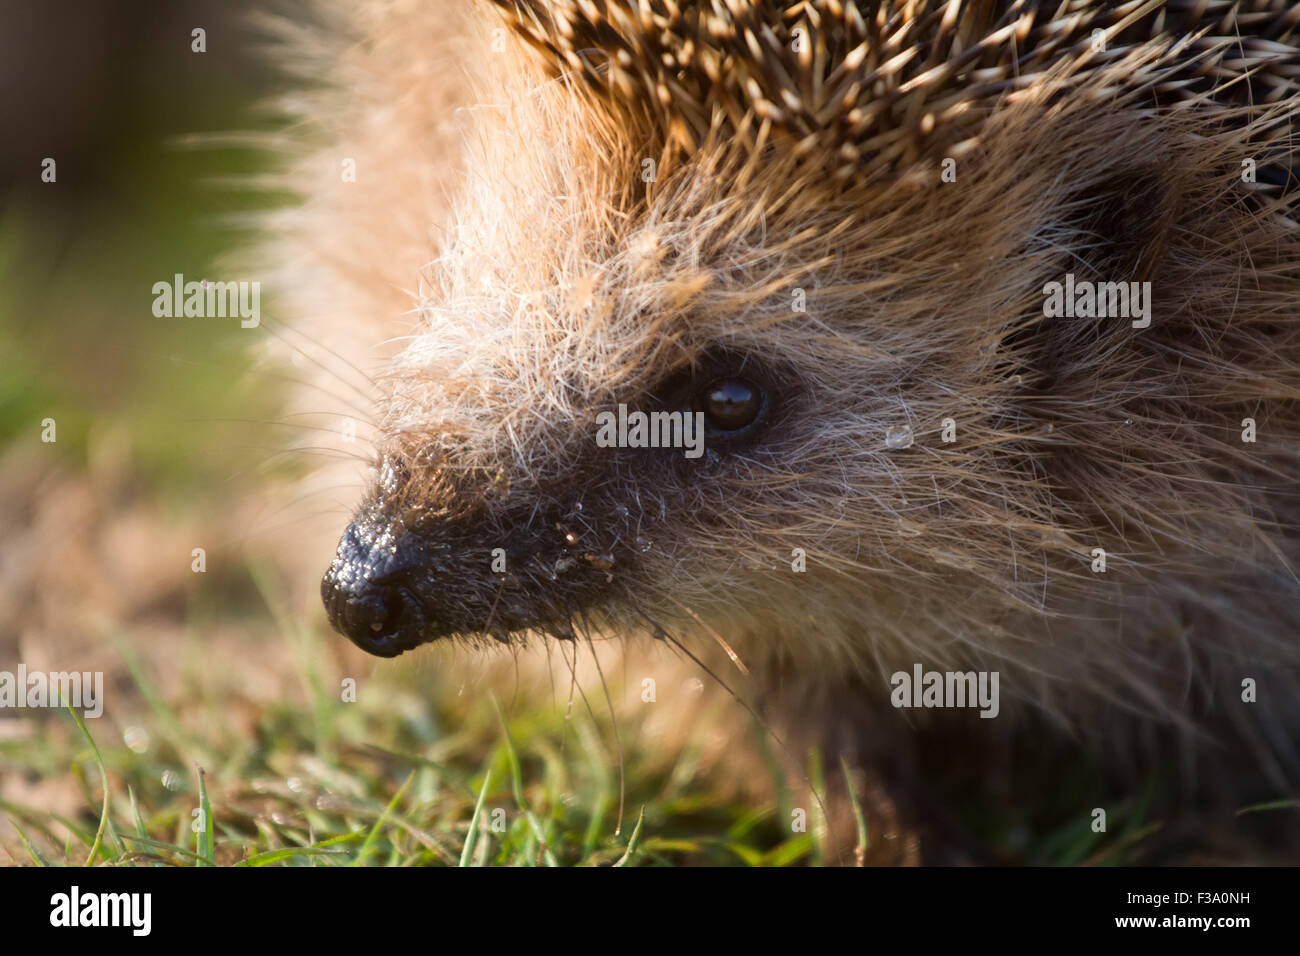 insectivorous animal a hedgehog largely close up - Stock Image